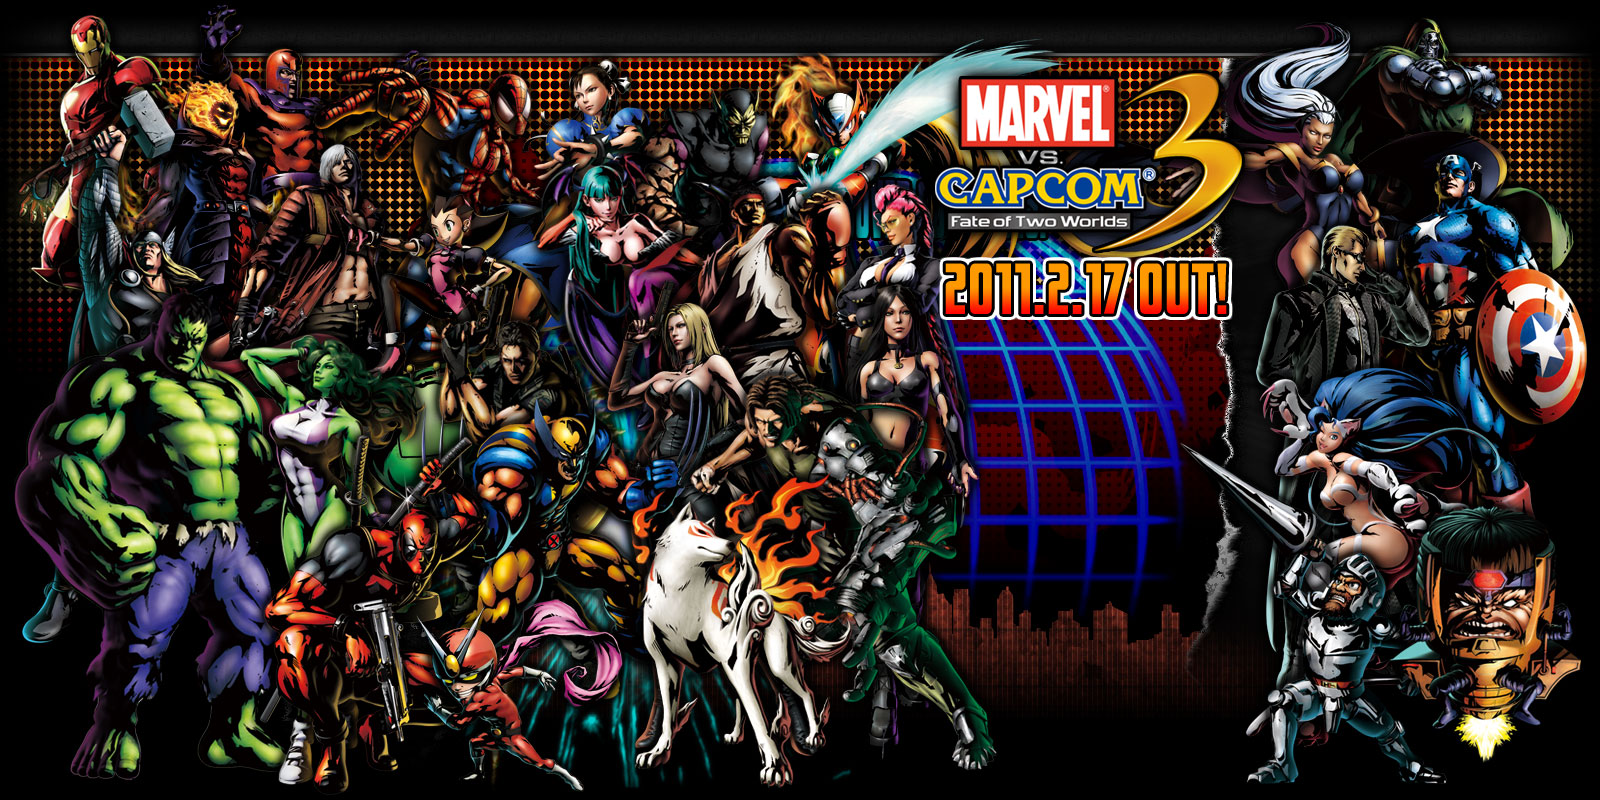 The DangerDang Blogspot  Marvel vs  Capcom 3  Fate of Two Worlds